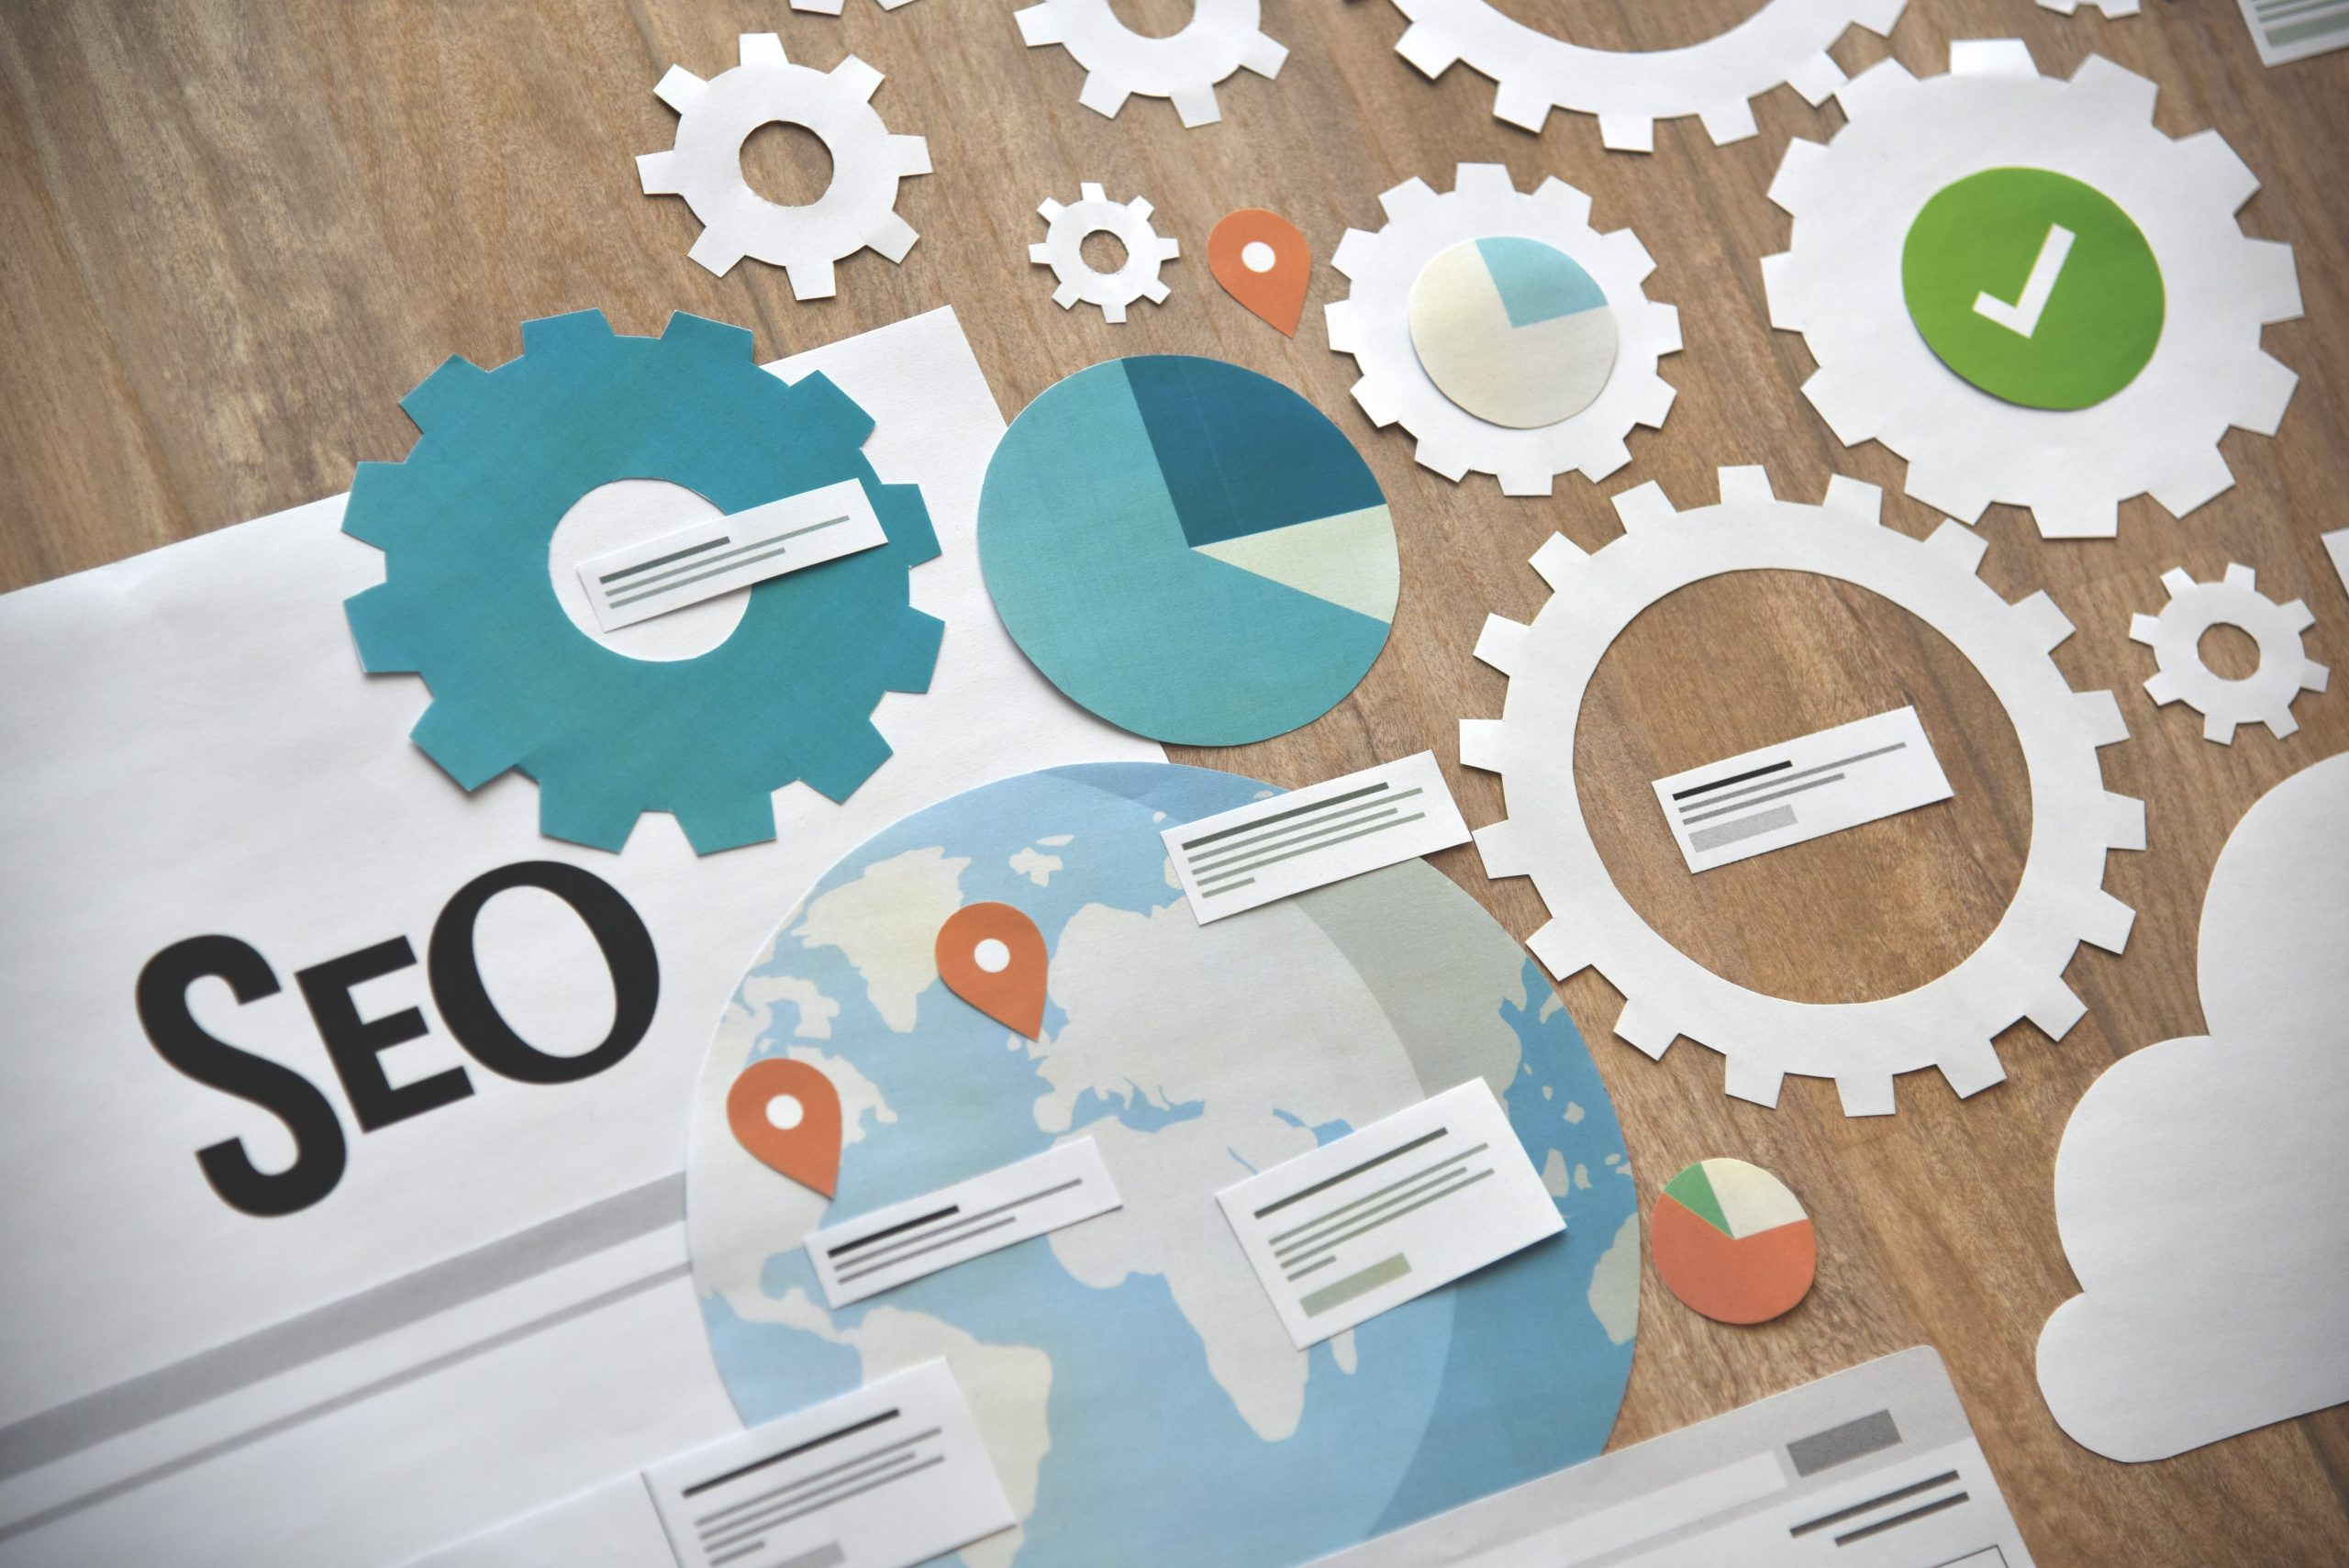 Five things I learned about SEO (and using it for real estate investing) today.